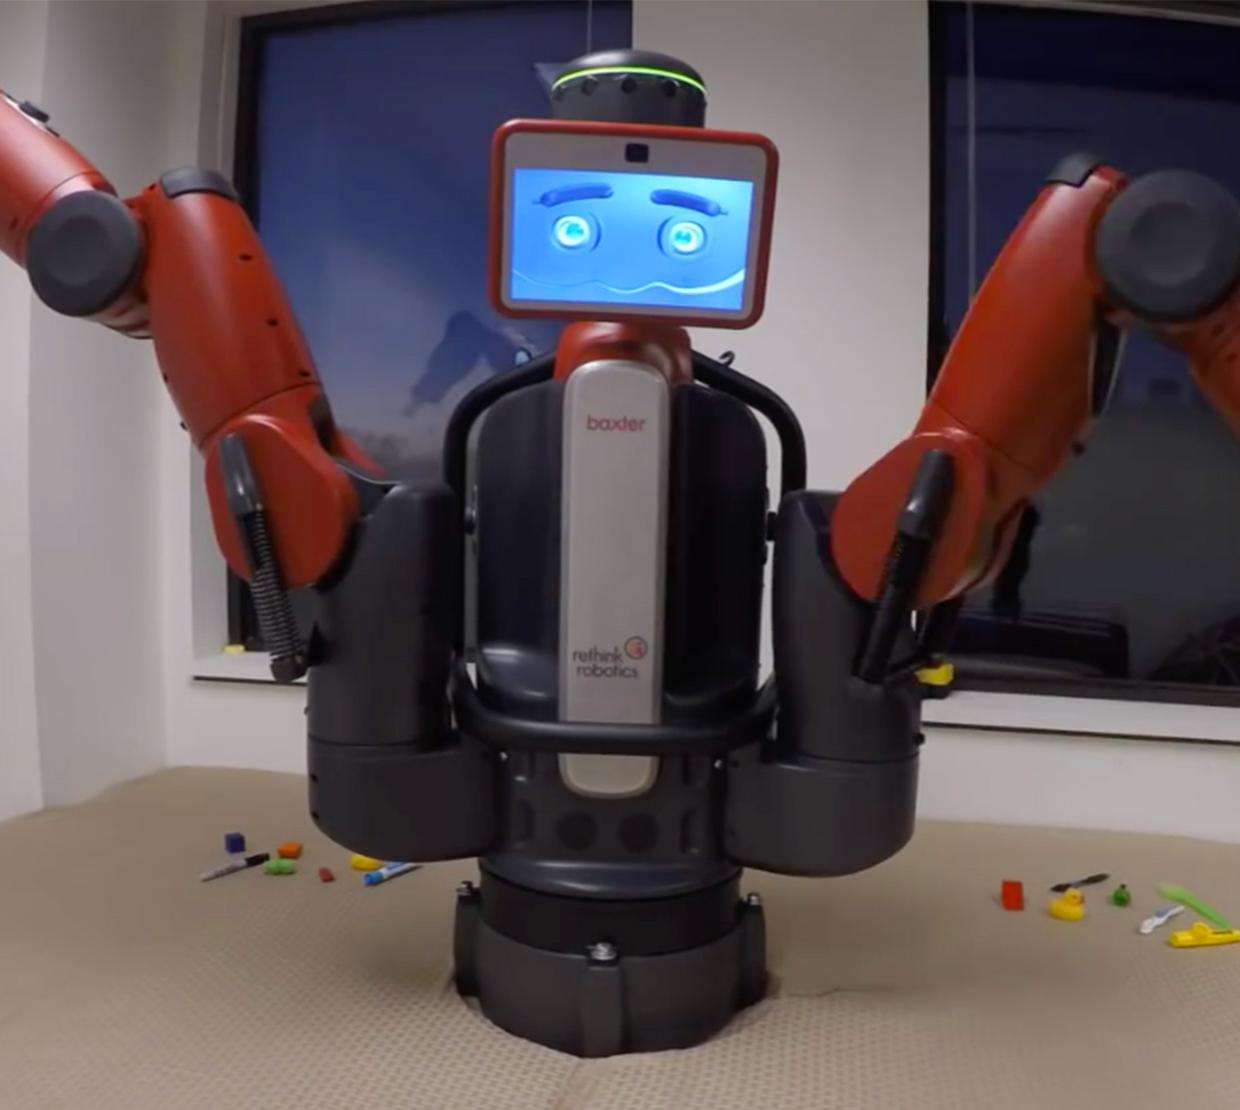 Robot with long arms sitting on office table